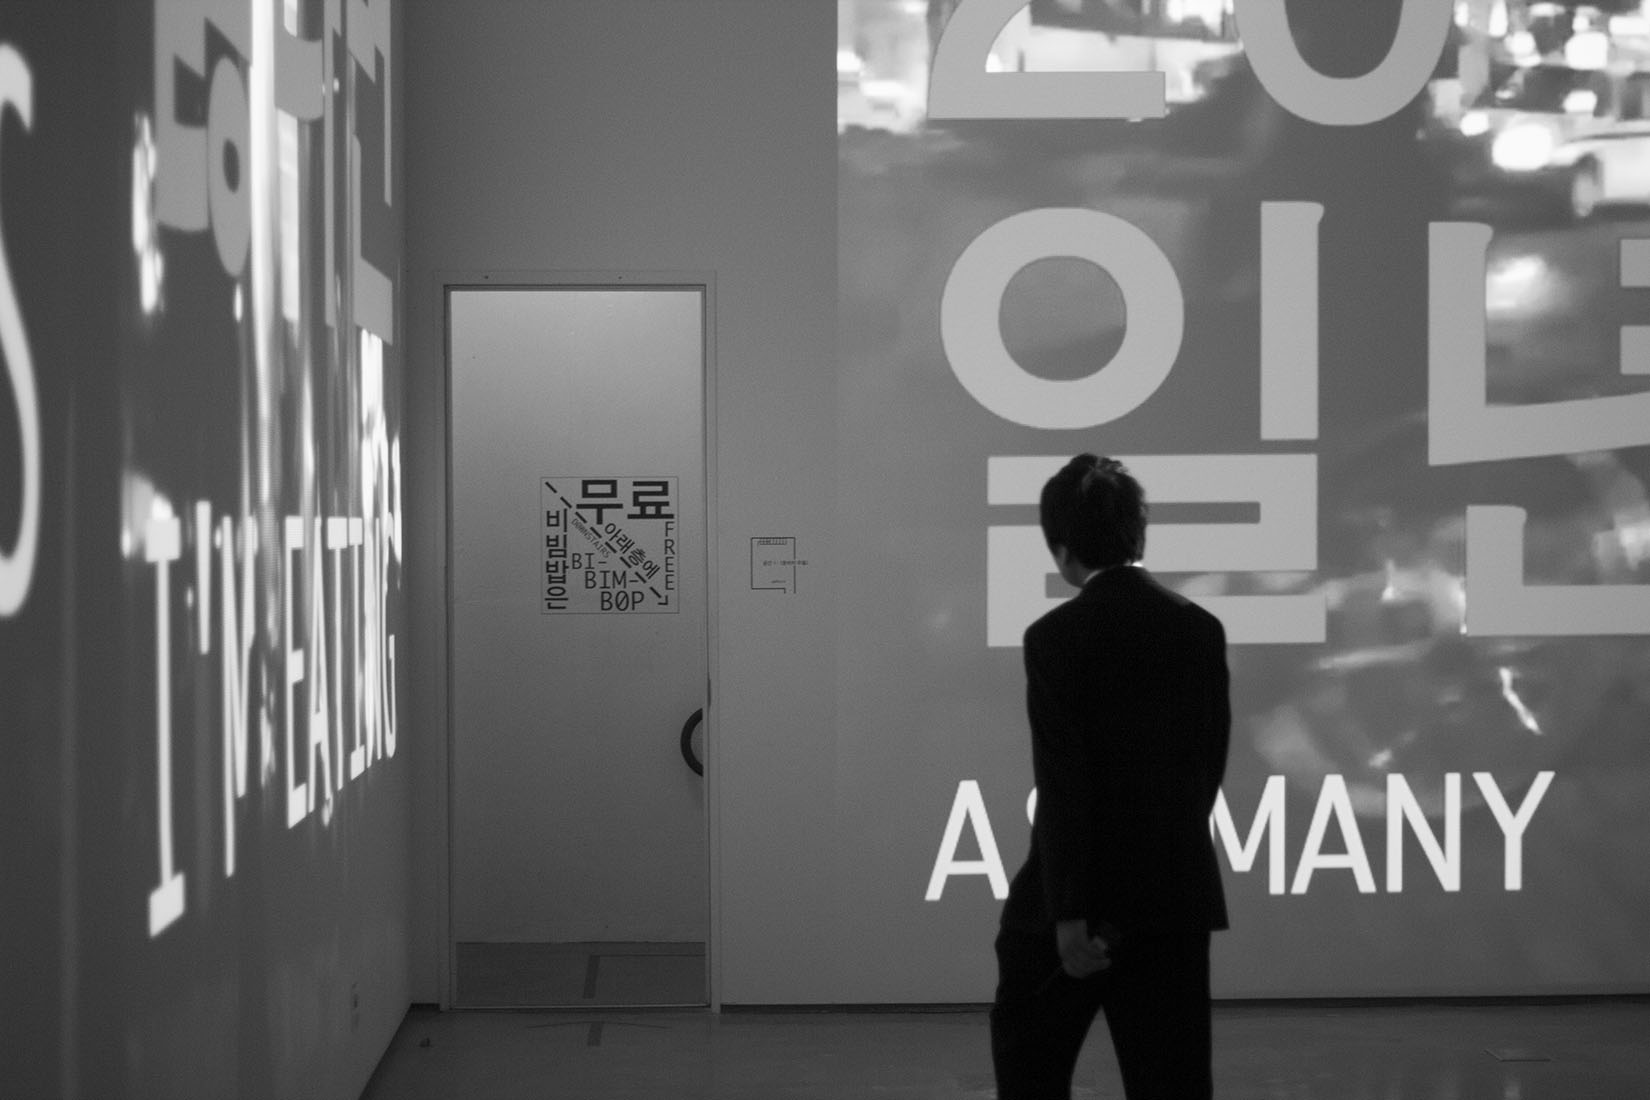 YHCHI, video installation, Museum of Contemporary art, interactive art, typographic projection, hangul, Monaco typeface, silhouette